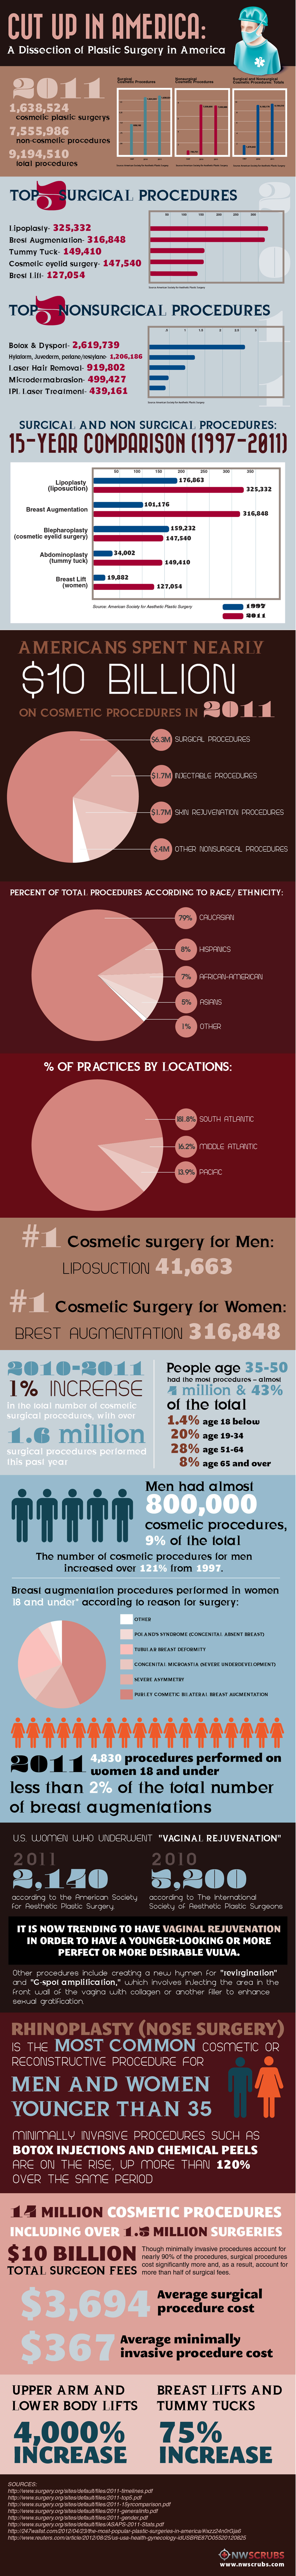 cut-up-in-america-a-dissection-of-plastic-surgery-in-america_504a6fd81464d